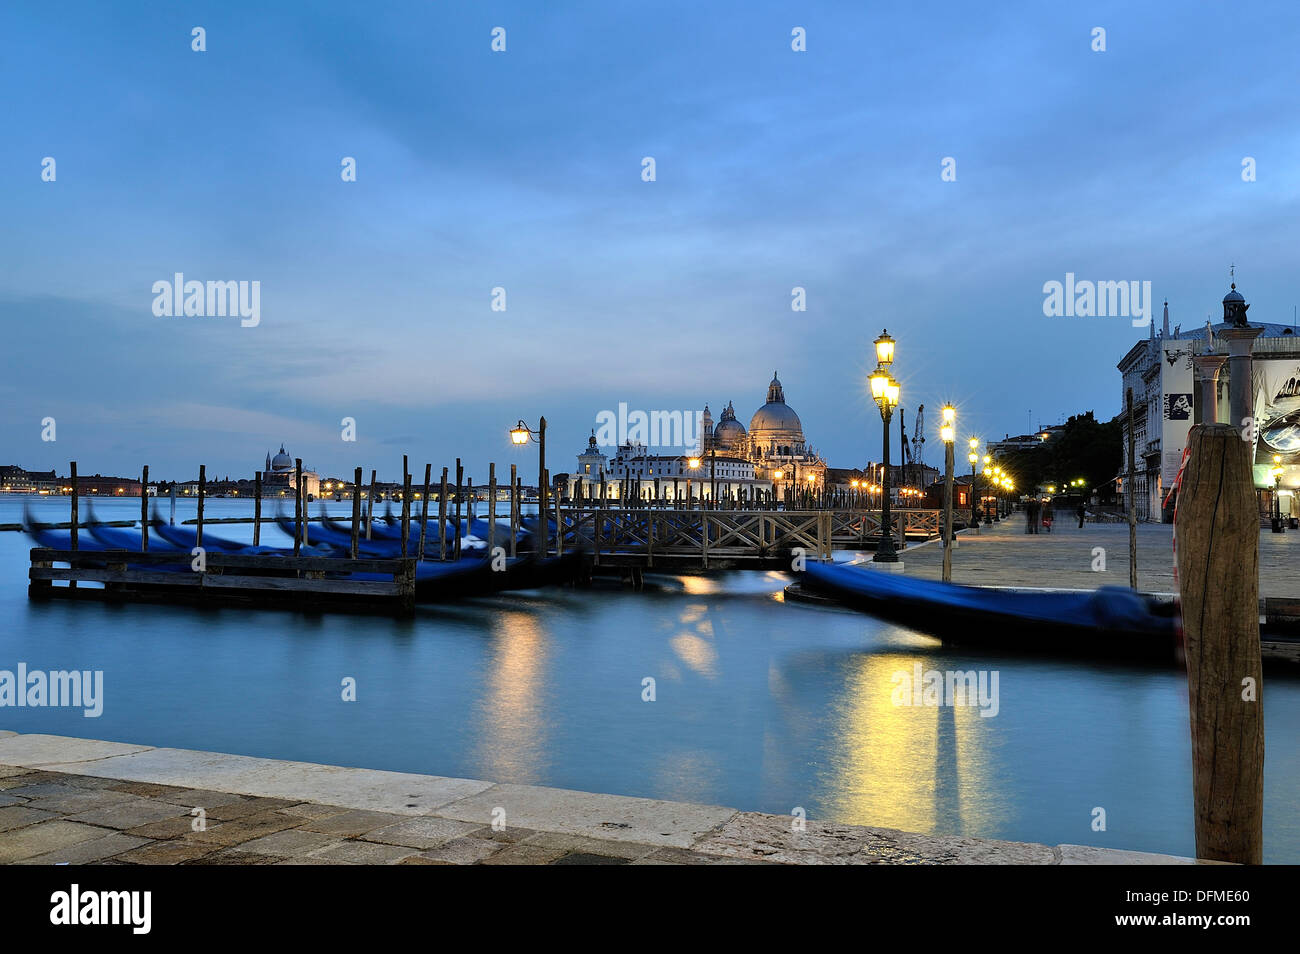 Beautiful image captured during the blue hour in Venice, foreground we see the typical Venetian Gondolas moored at the pier, to - Stock Image